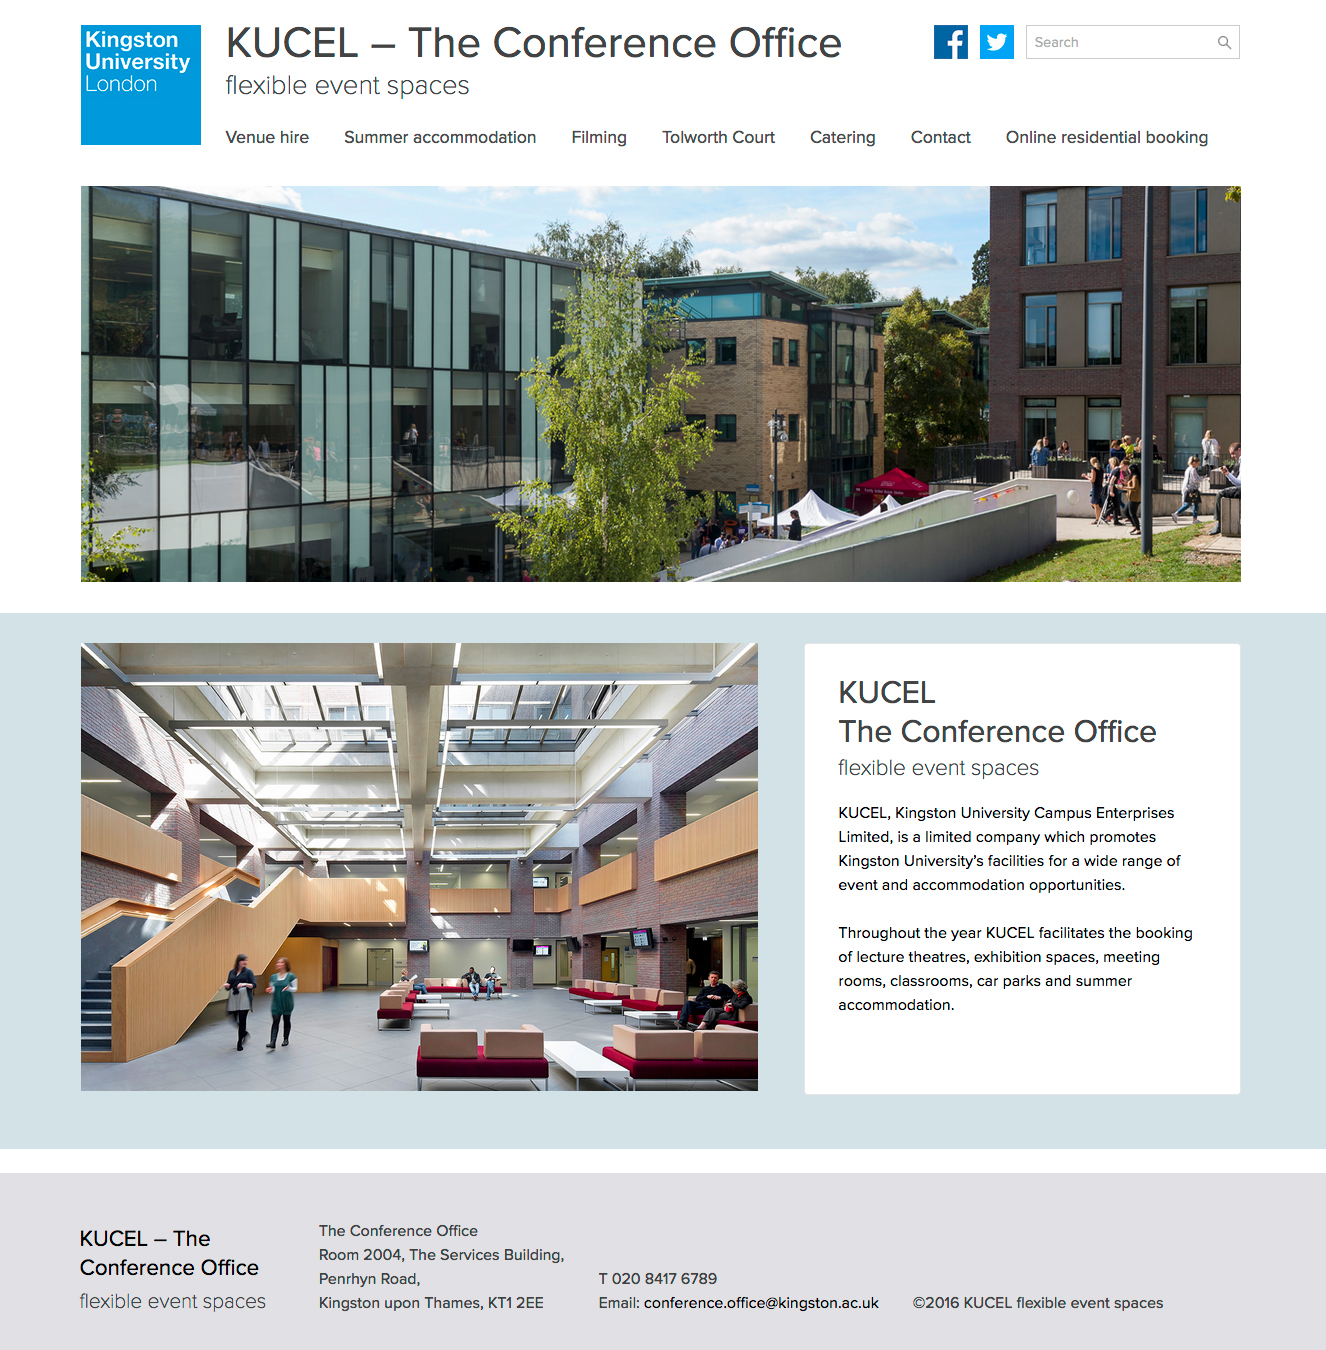 KUCEL website screenshot